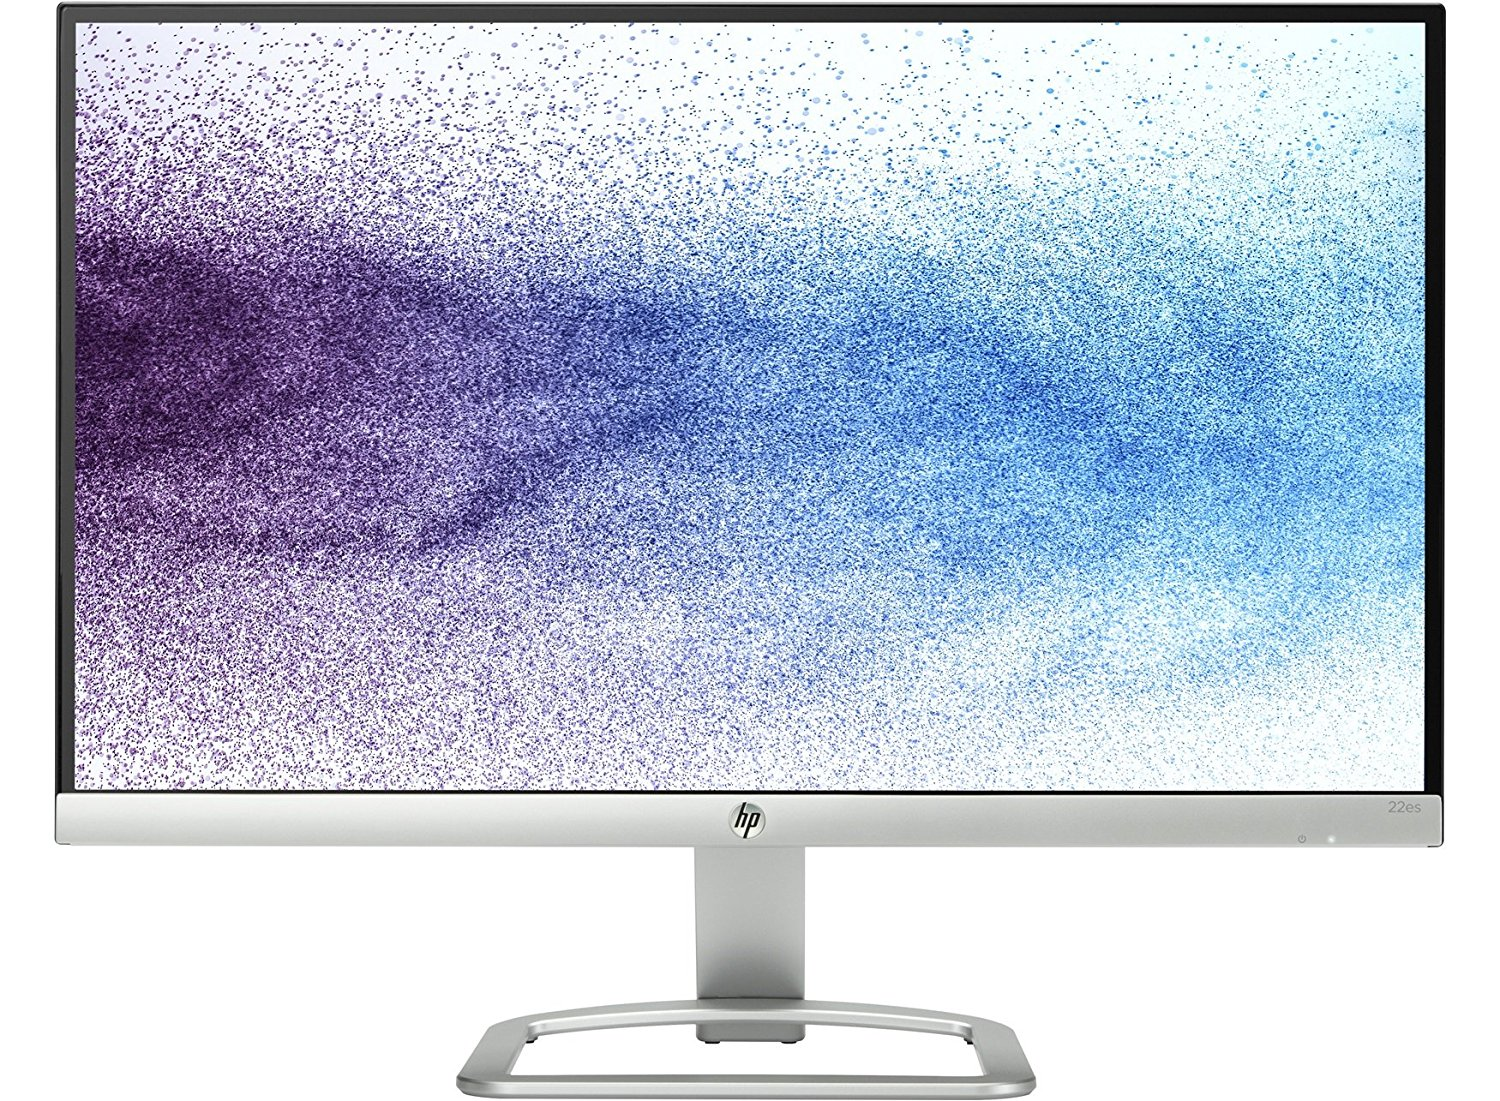 HP T3M71AA 21.5 inch IPS LED Monitor